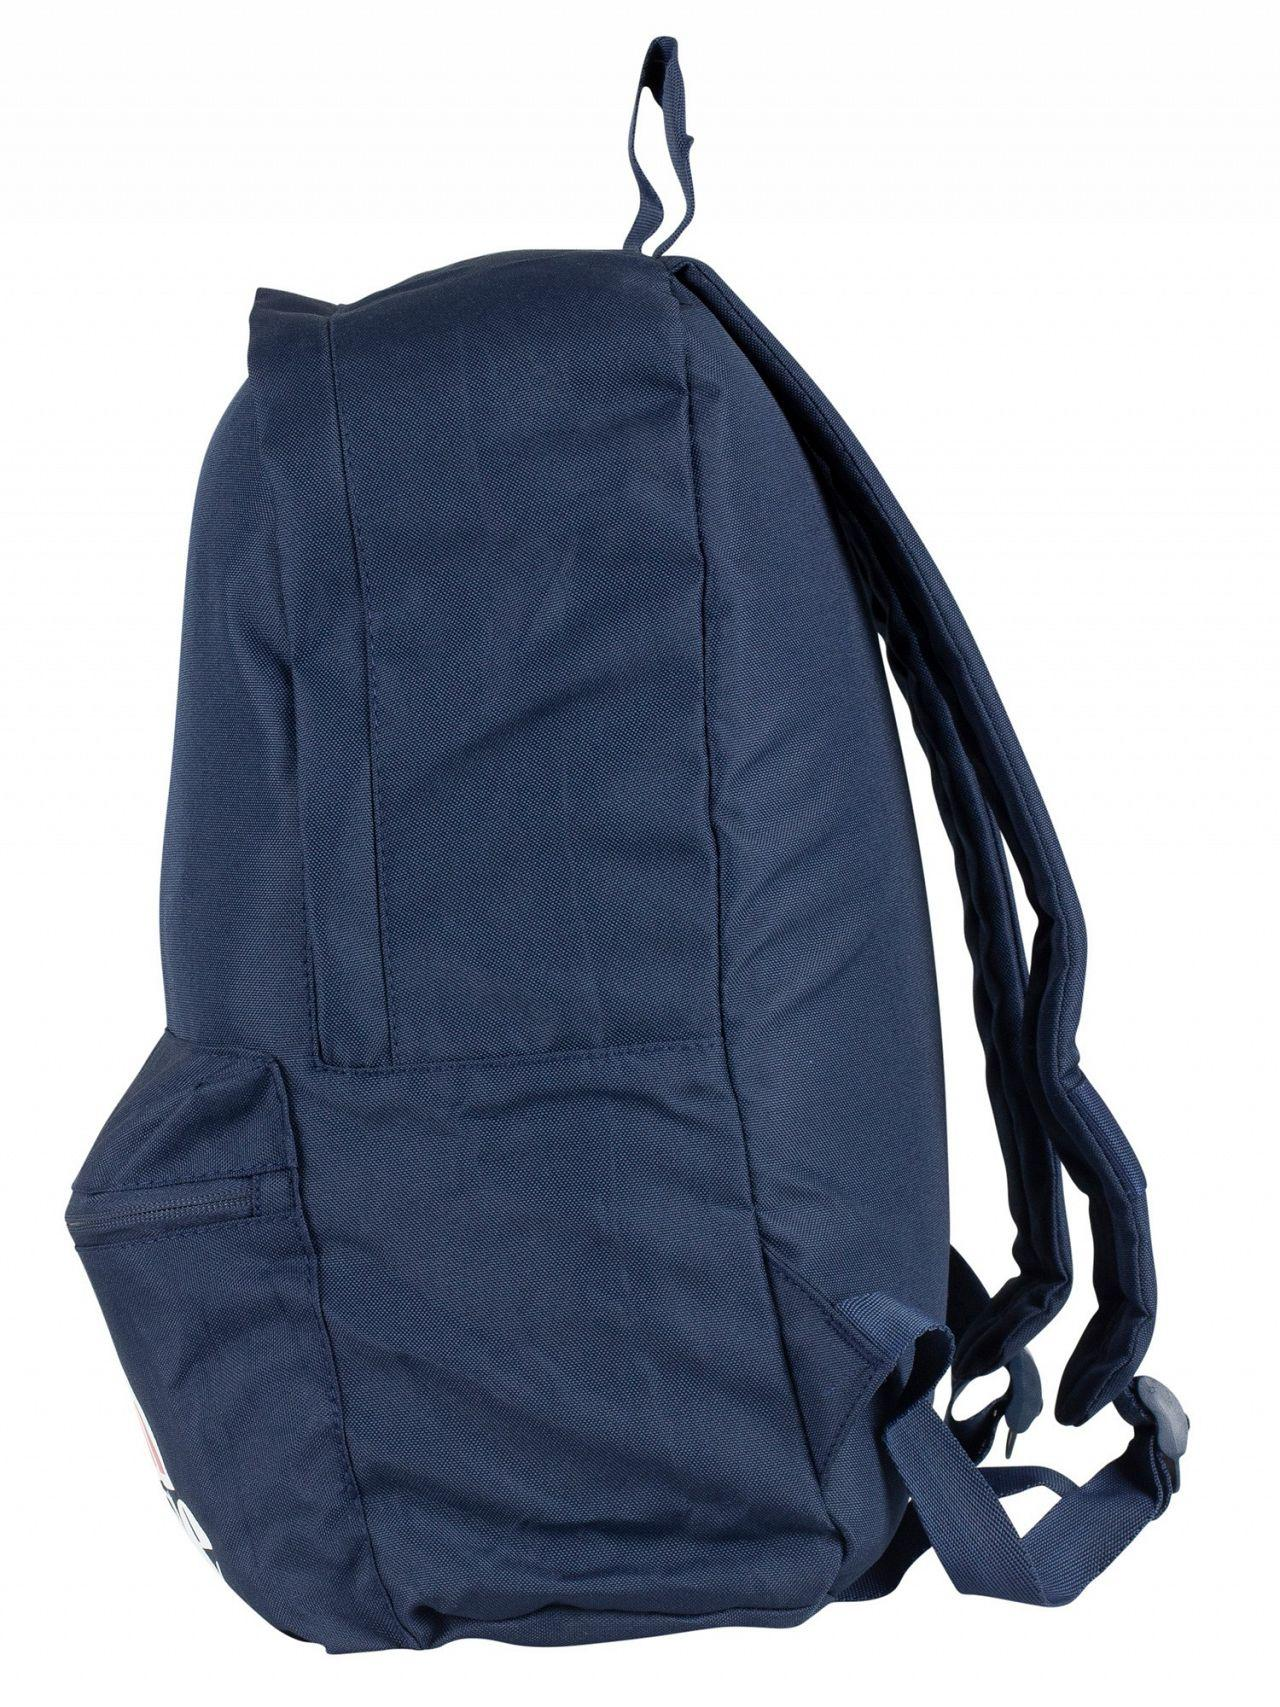 8a6948b935 Lyst - Ellesse Navy Rolby Backpack   Pencil Case in Blue for Men